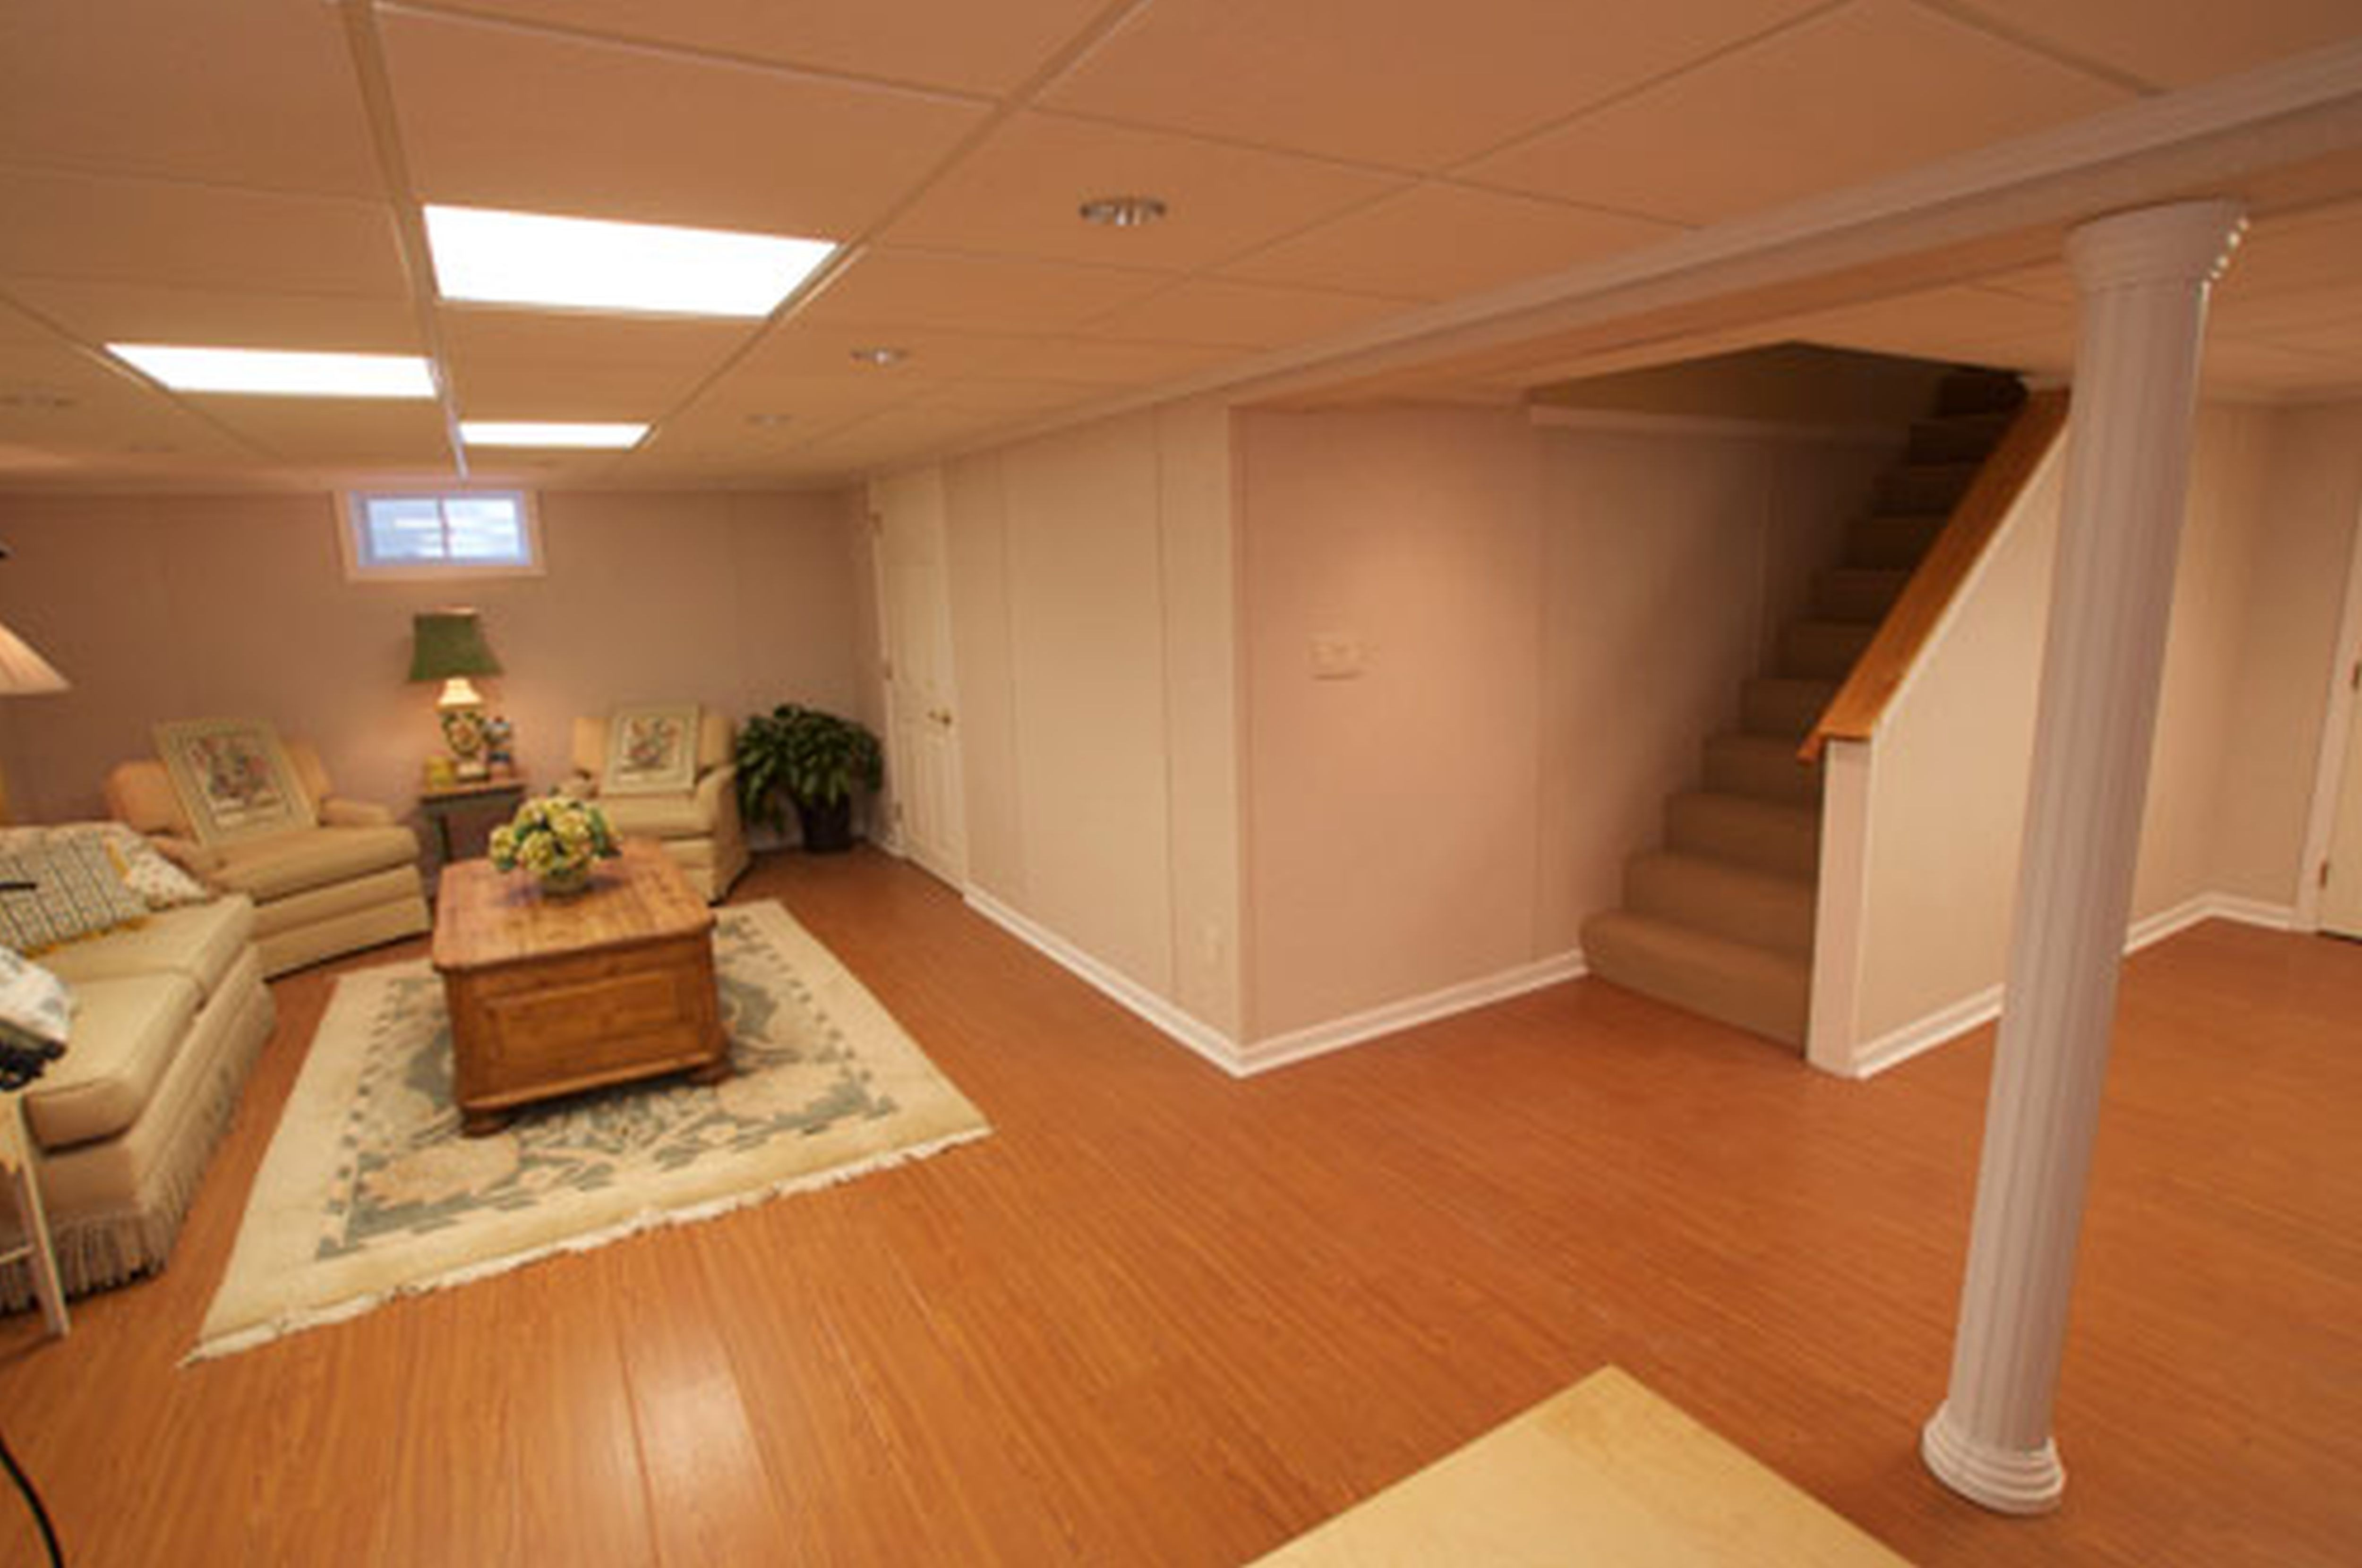 Best ideas about Tiny Basement Ideas . Save or Pin Small Basement Ideas Set in Your Home Traba Homes Now.